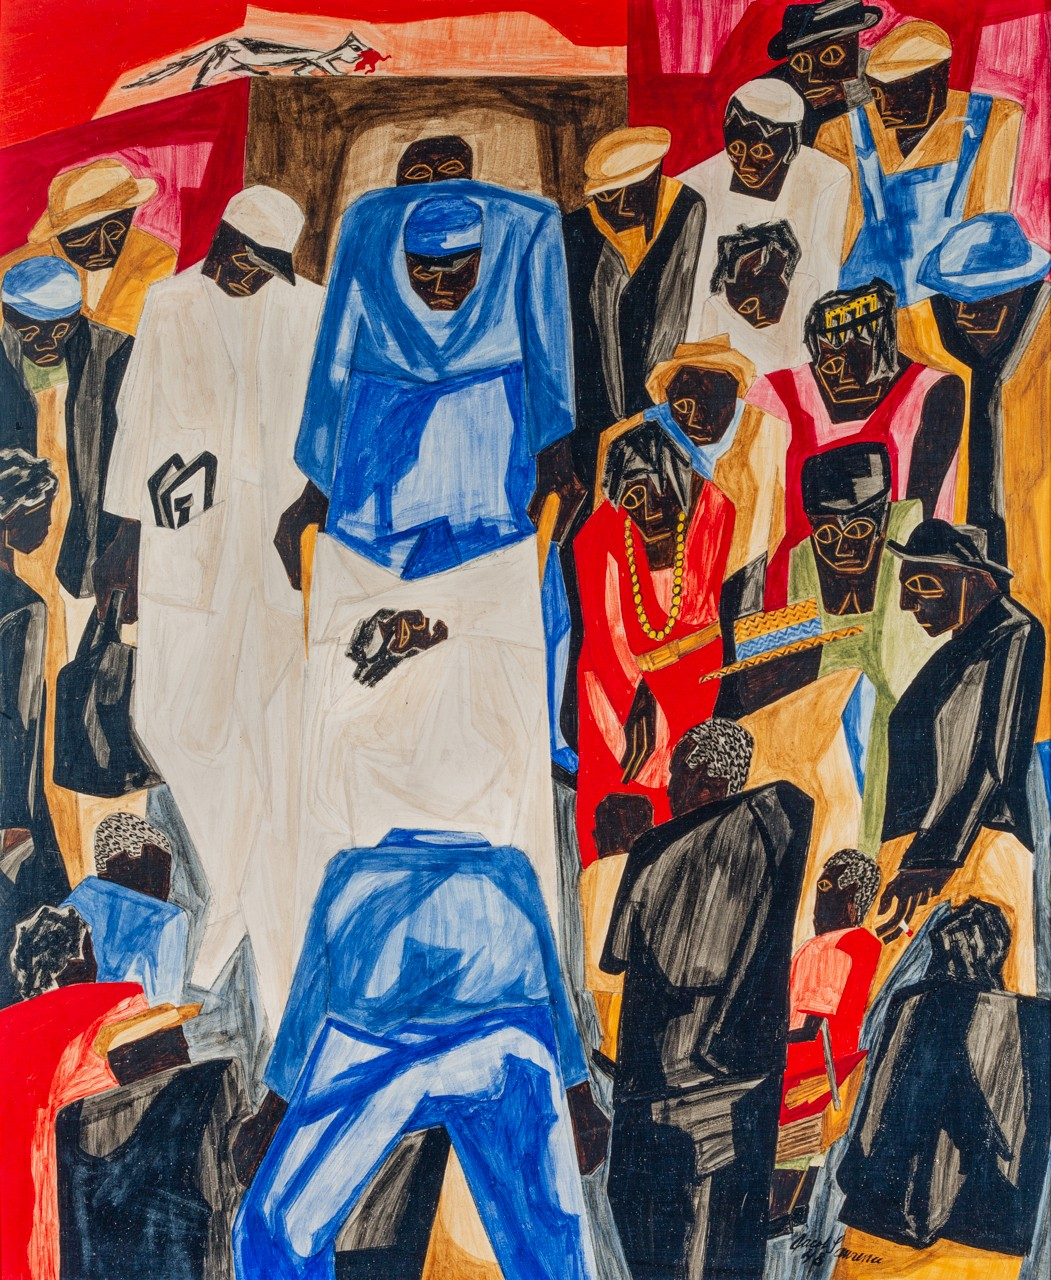 In this colorful scene by Jacob Lawrence, mbulance attendants lift a stretcher carrying an ailing figure covered in white sheets